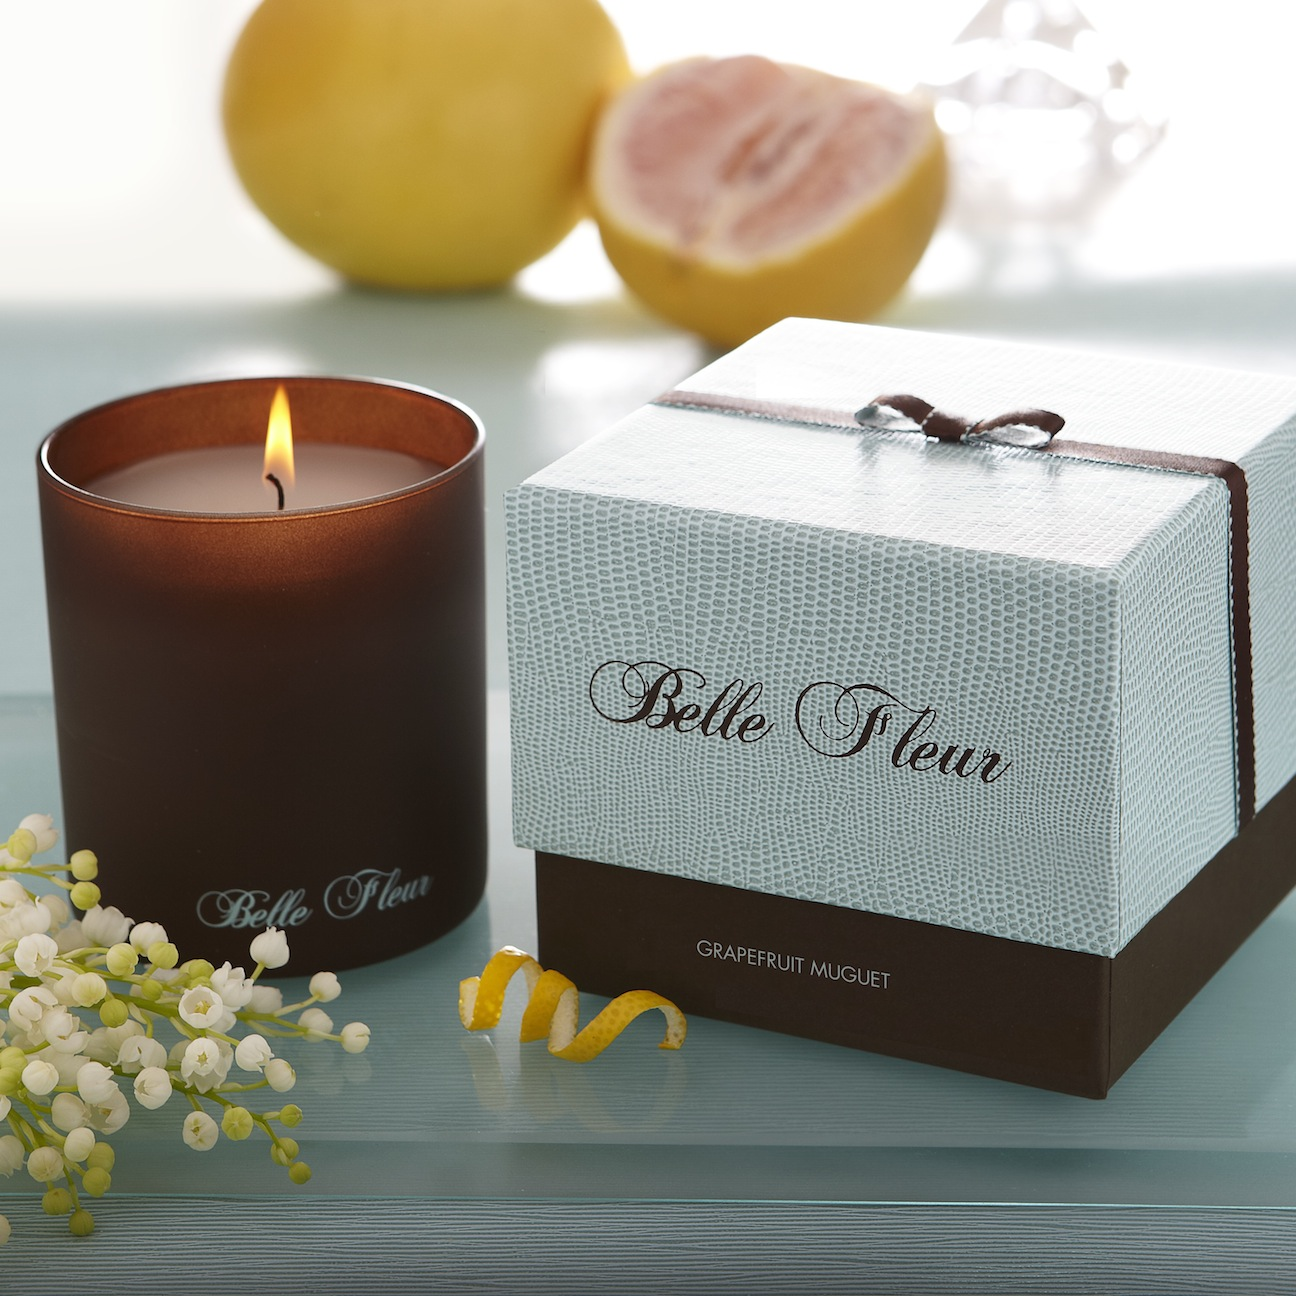 scent snob belle fleur grapefruit muguet candle. Black Bedroom Furniture Sets. Home Design Ideas